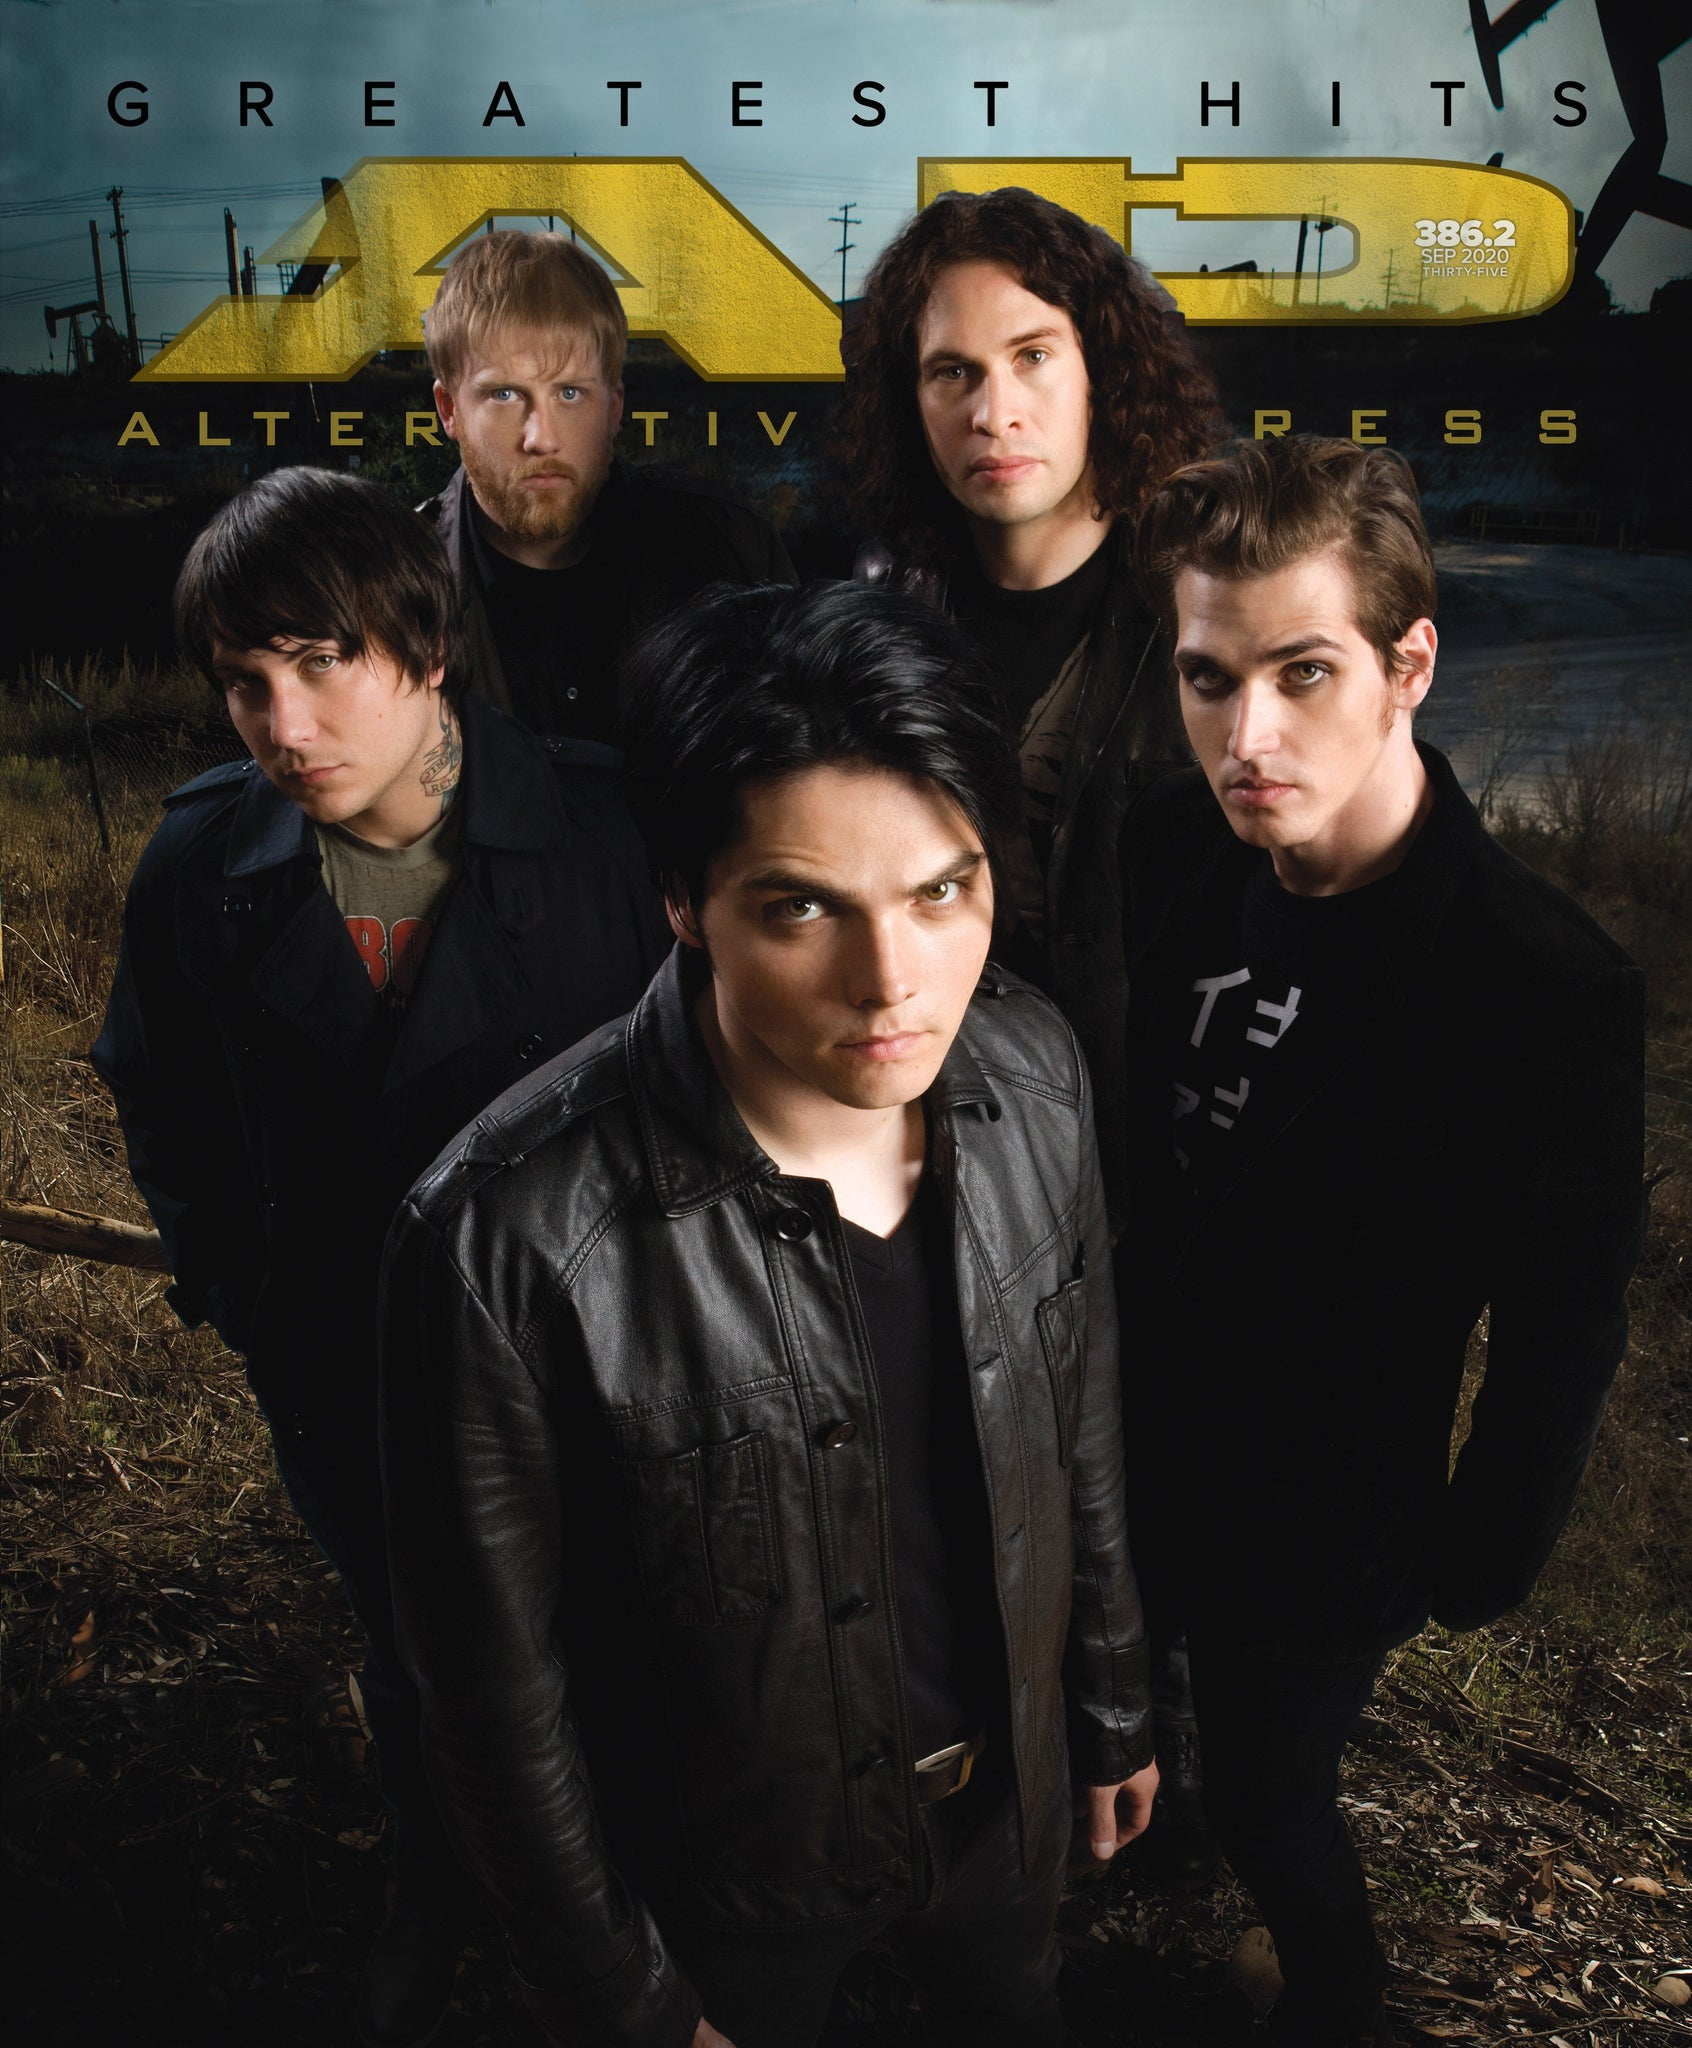 My Chemical Romance - Alternative Press Magazine Issue 386 Version 2 - Single Issue